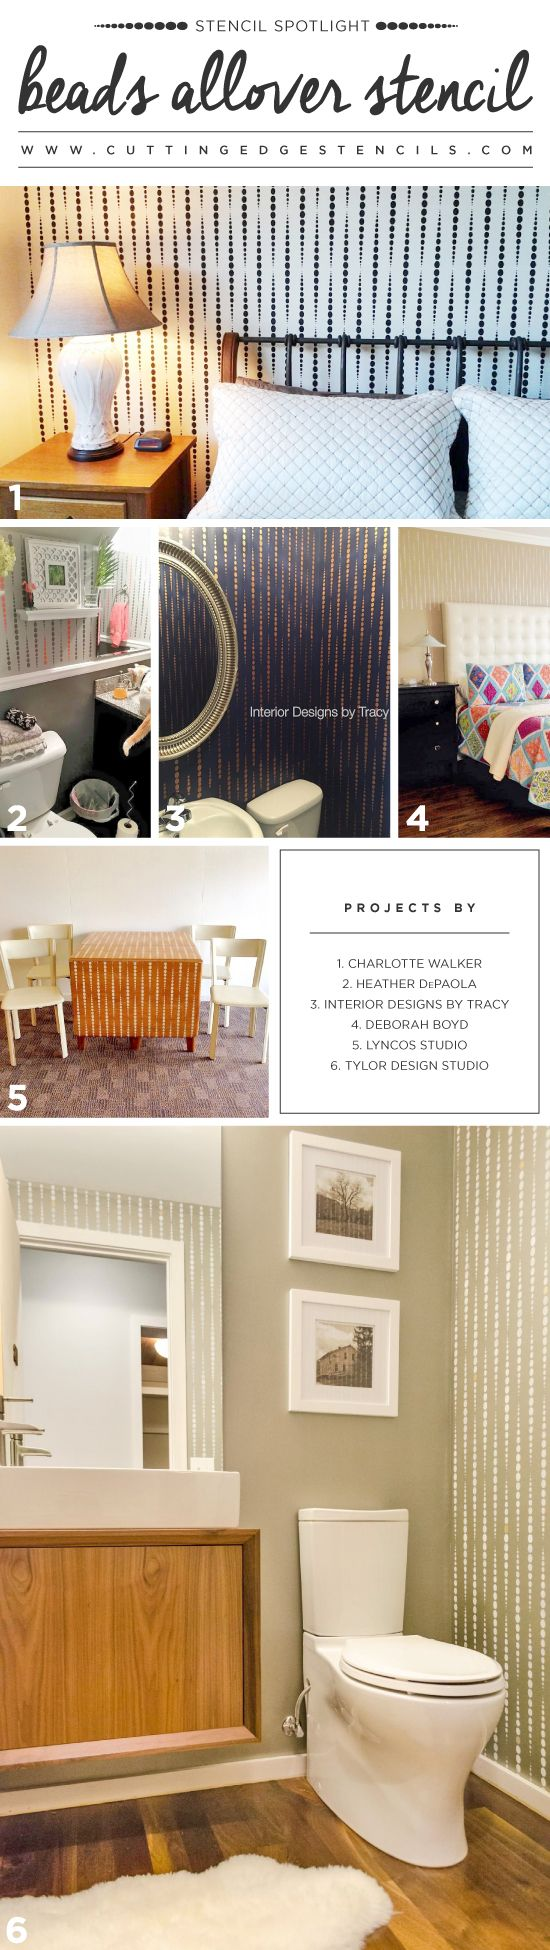 Best 25 wall stencil patterns ideas on pinterest wall cutting edge stencils shares diy stenciled room ideas using the beads allover stencil wall stenciling amipublicfo Gallery